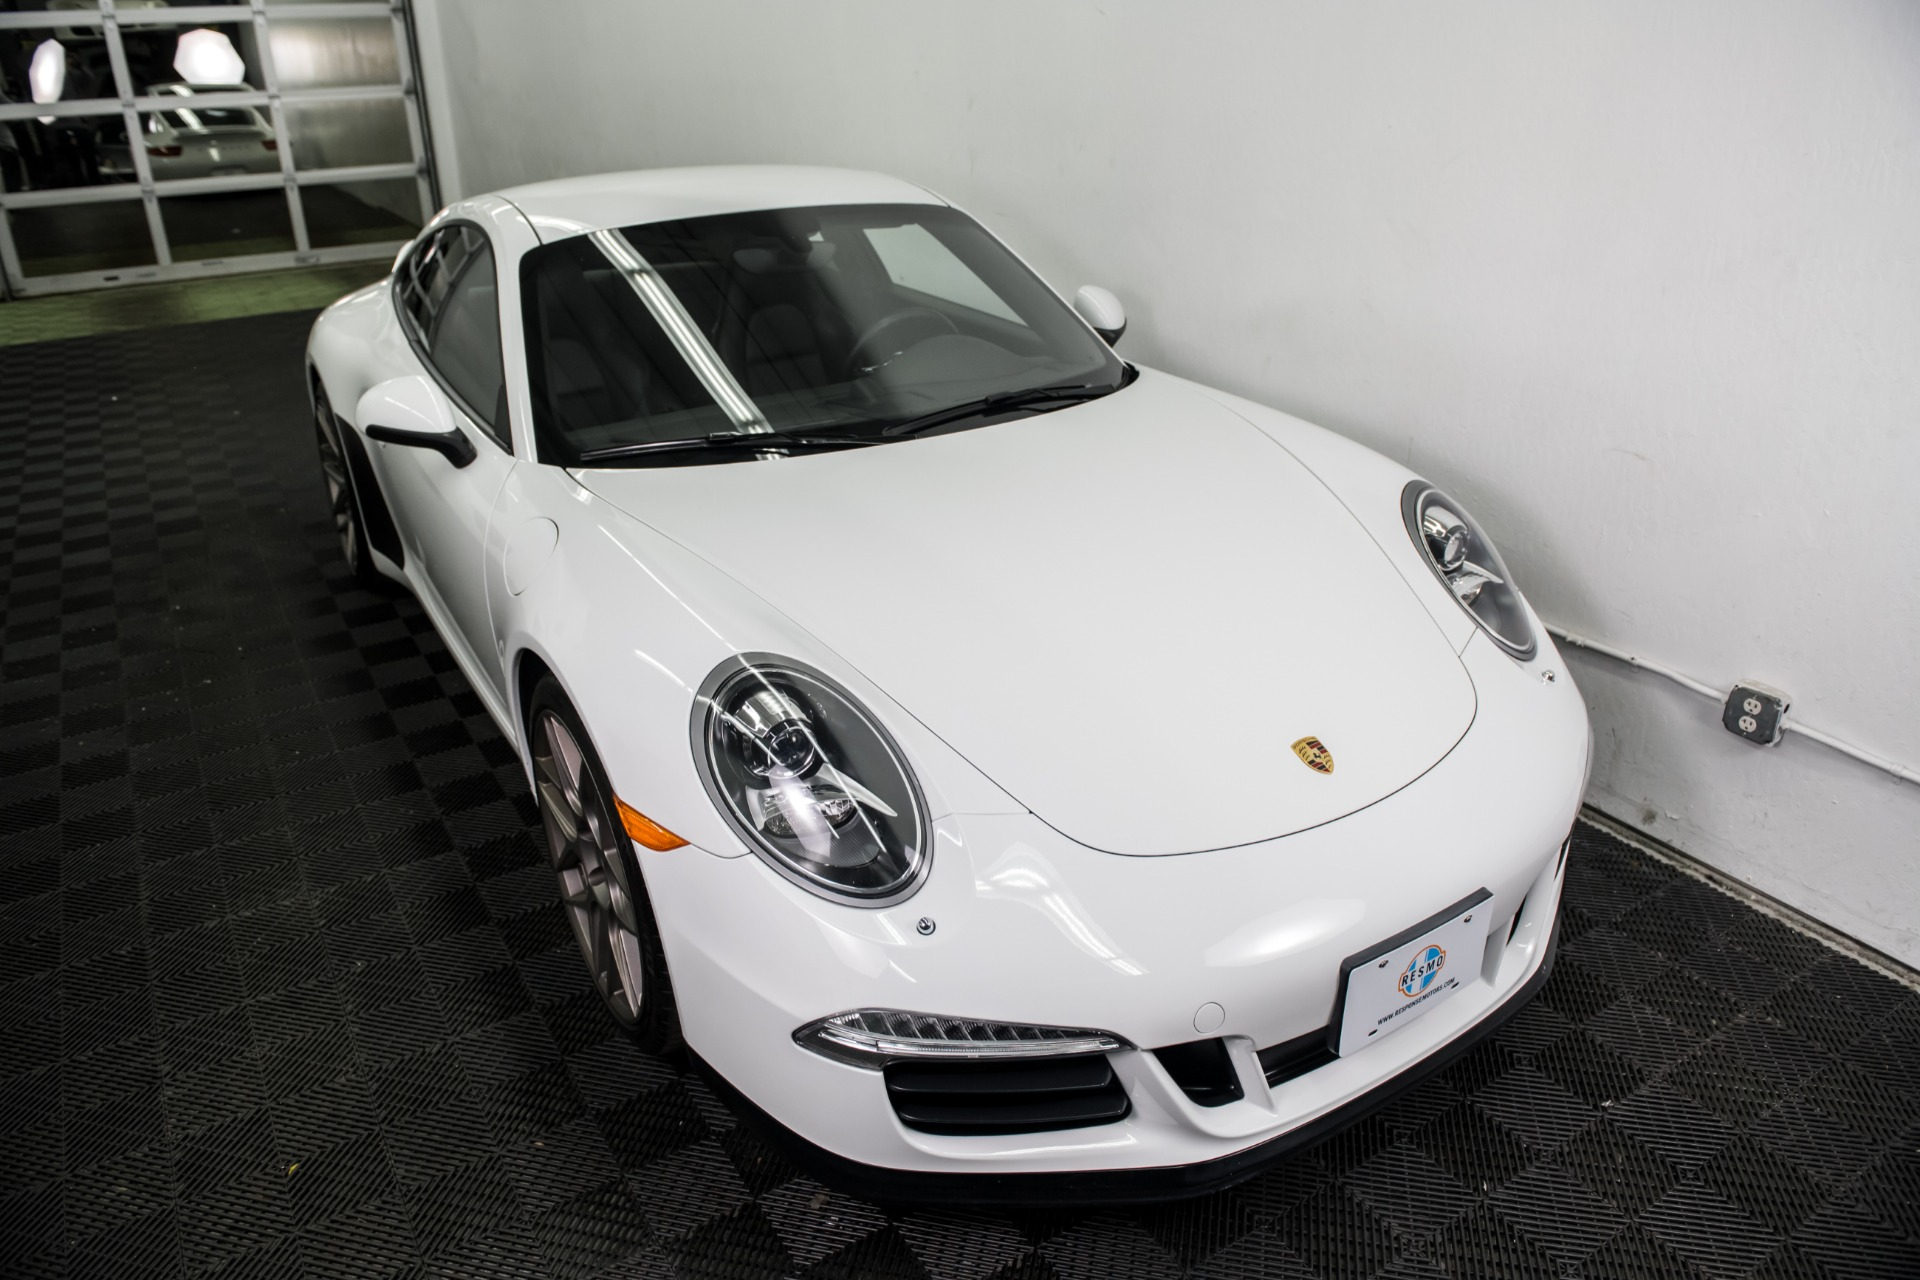 Used 2013 Porsche 911 Carrera S Used 2013 Porsche 911 Carrera S for sale Sold at Response Motors in Mountain View CA 3